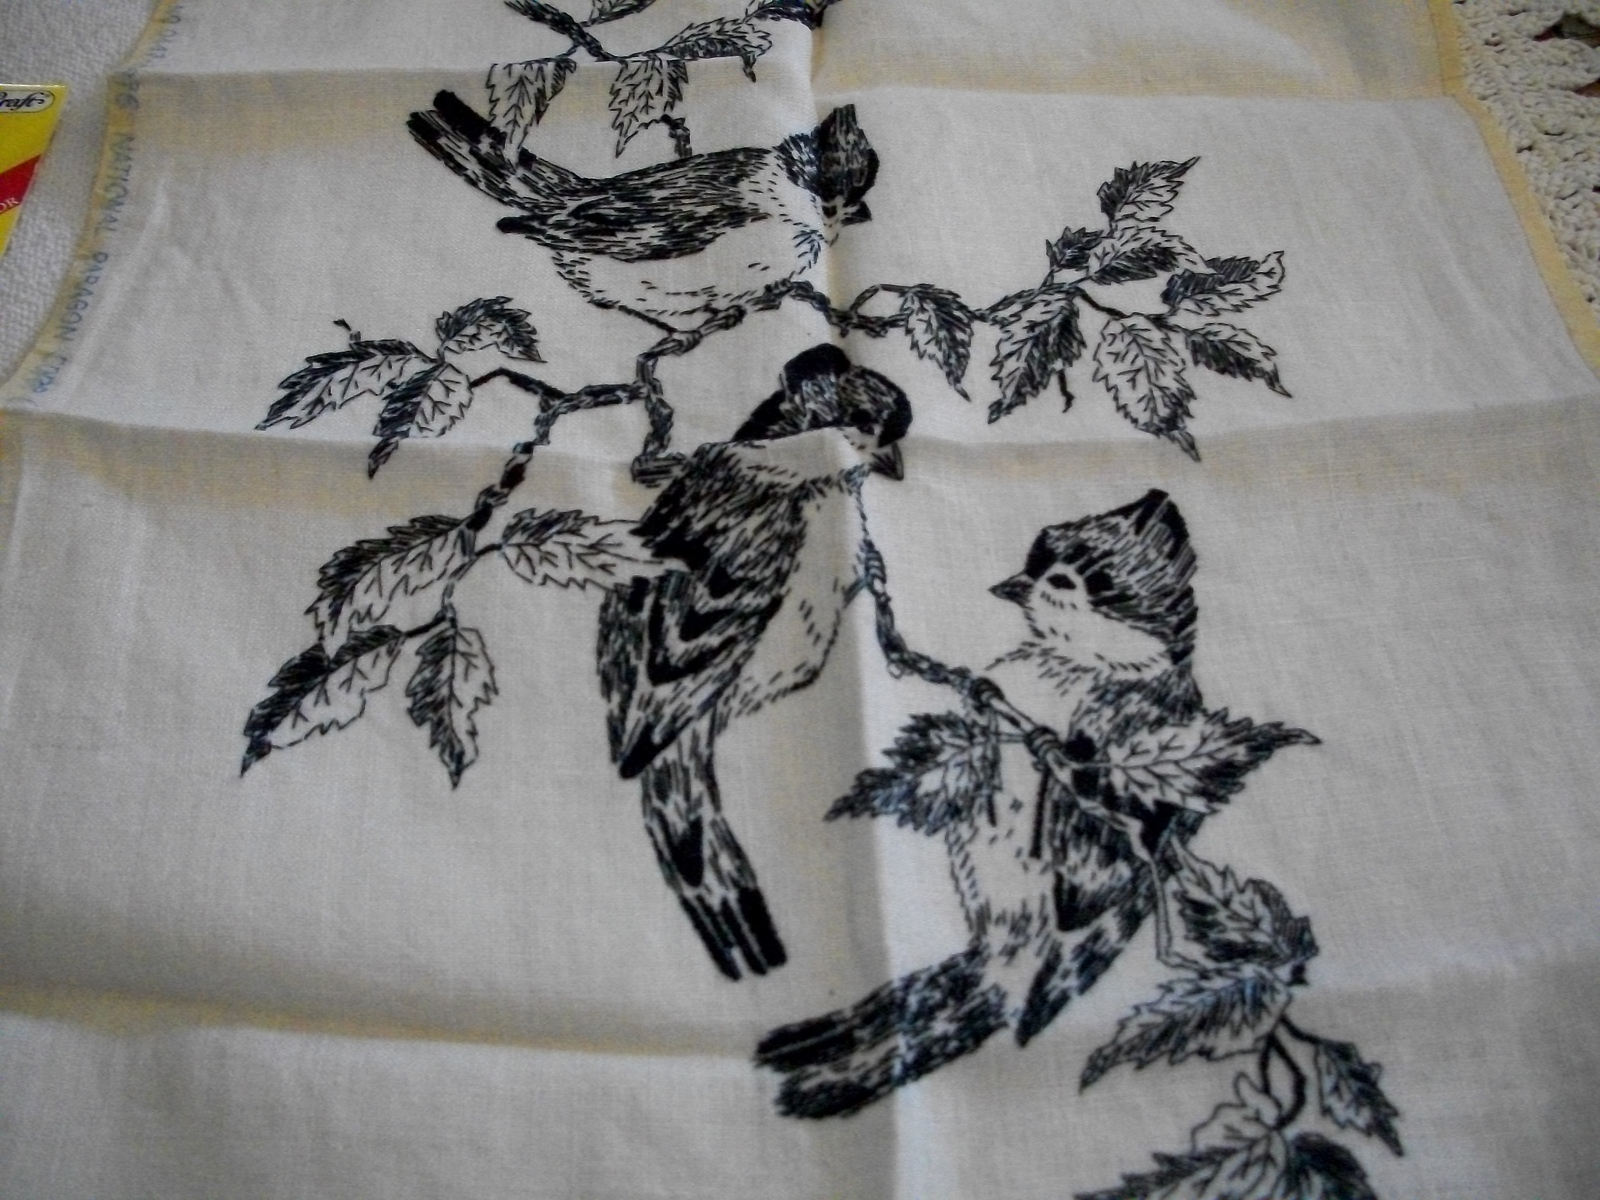 Jay Birds Stamped Design on Linen for Crewel Embroidery  - $15.00